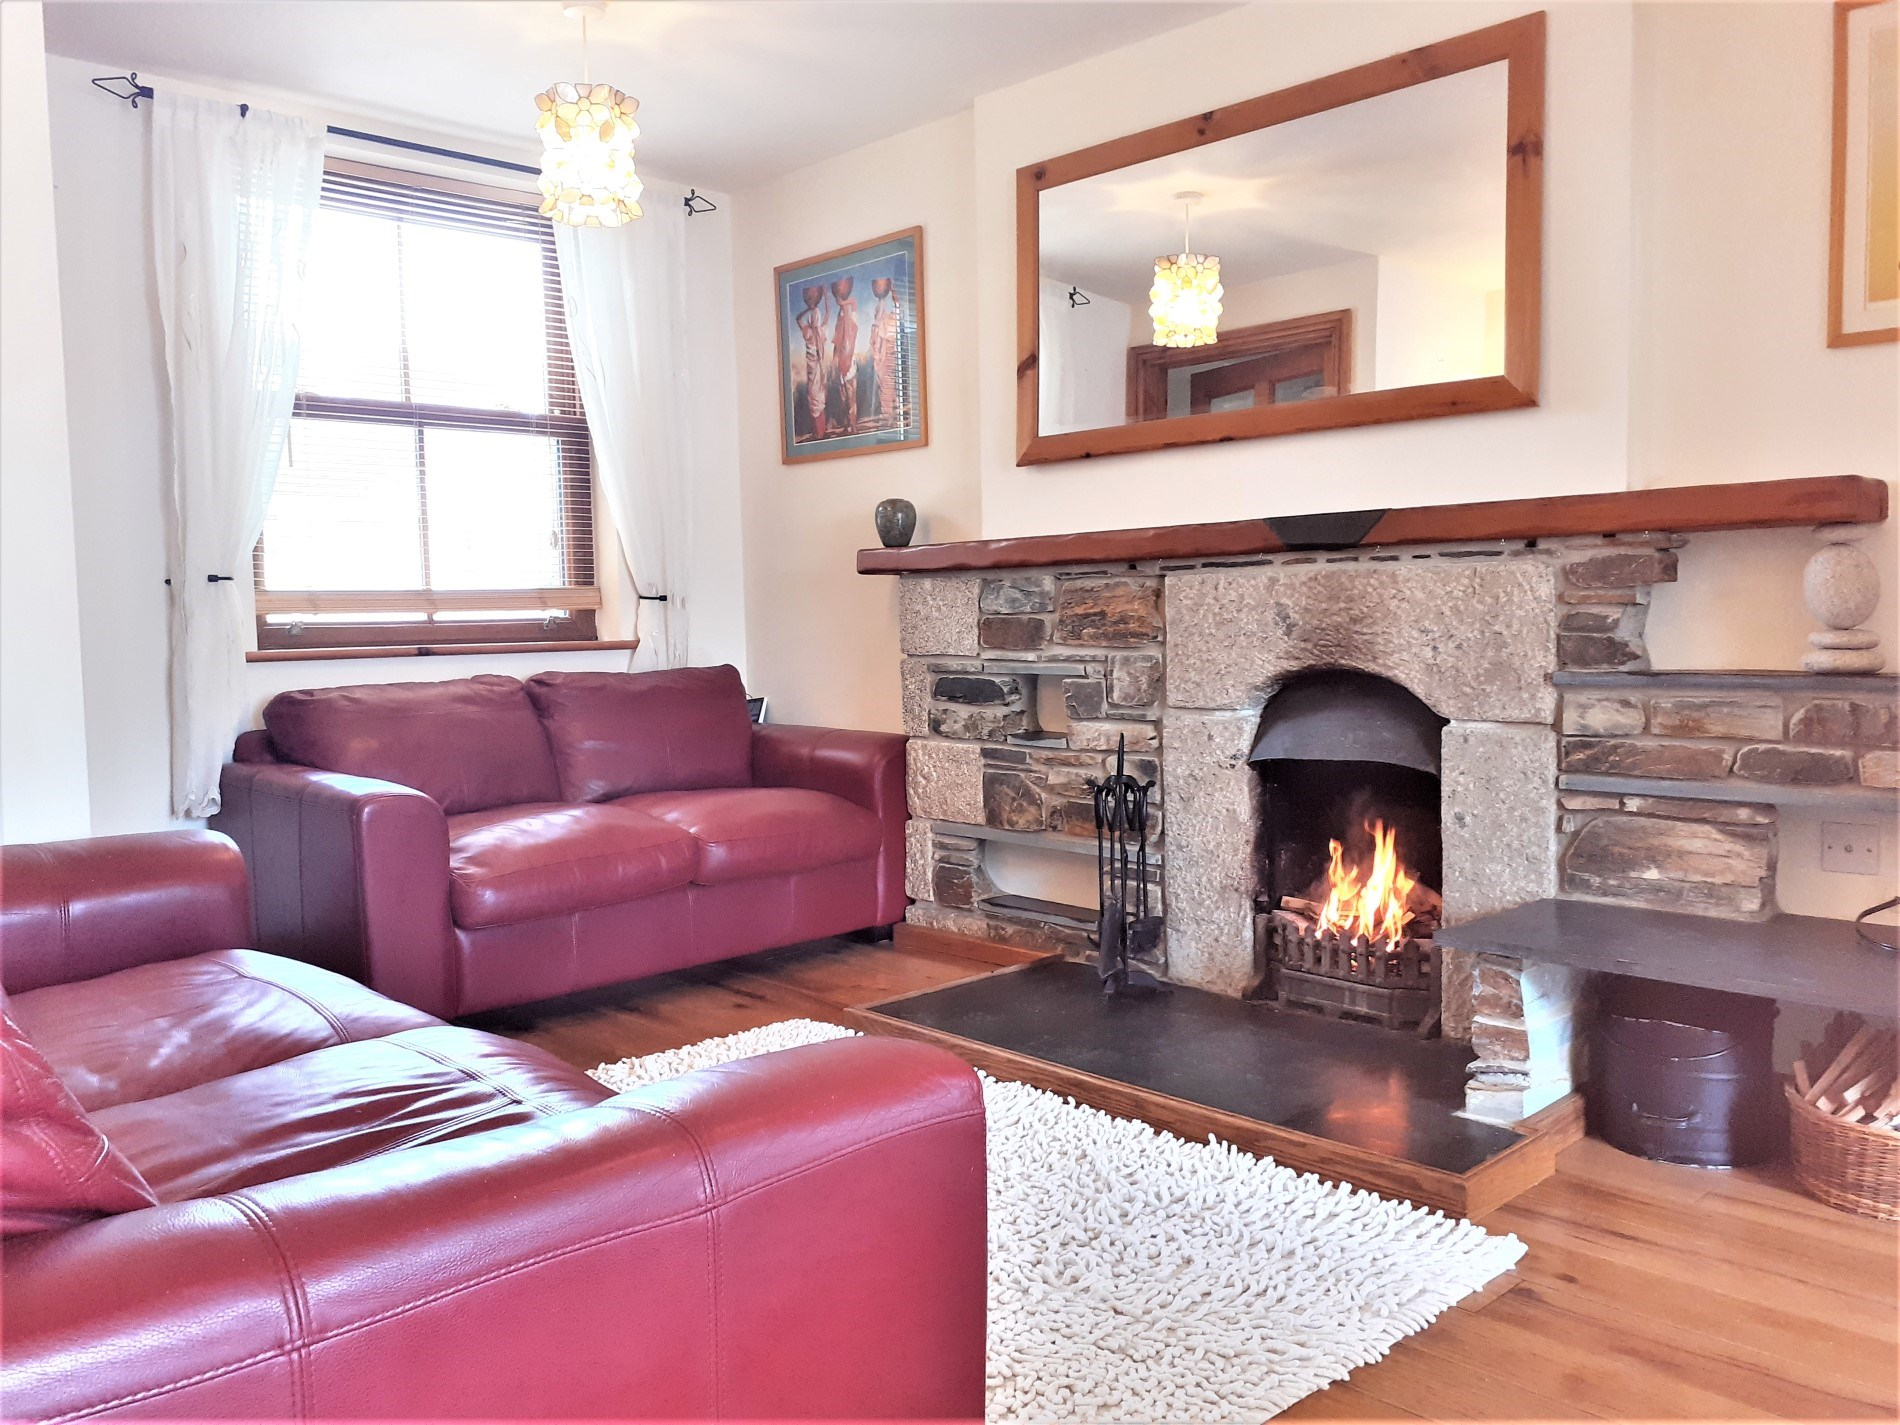 2 Bedroom Cottage in Truro, Cornwall